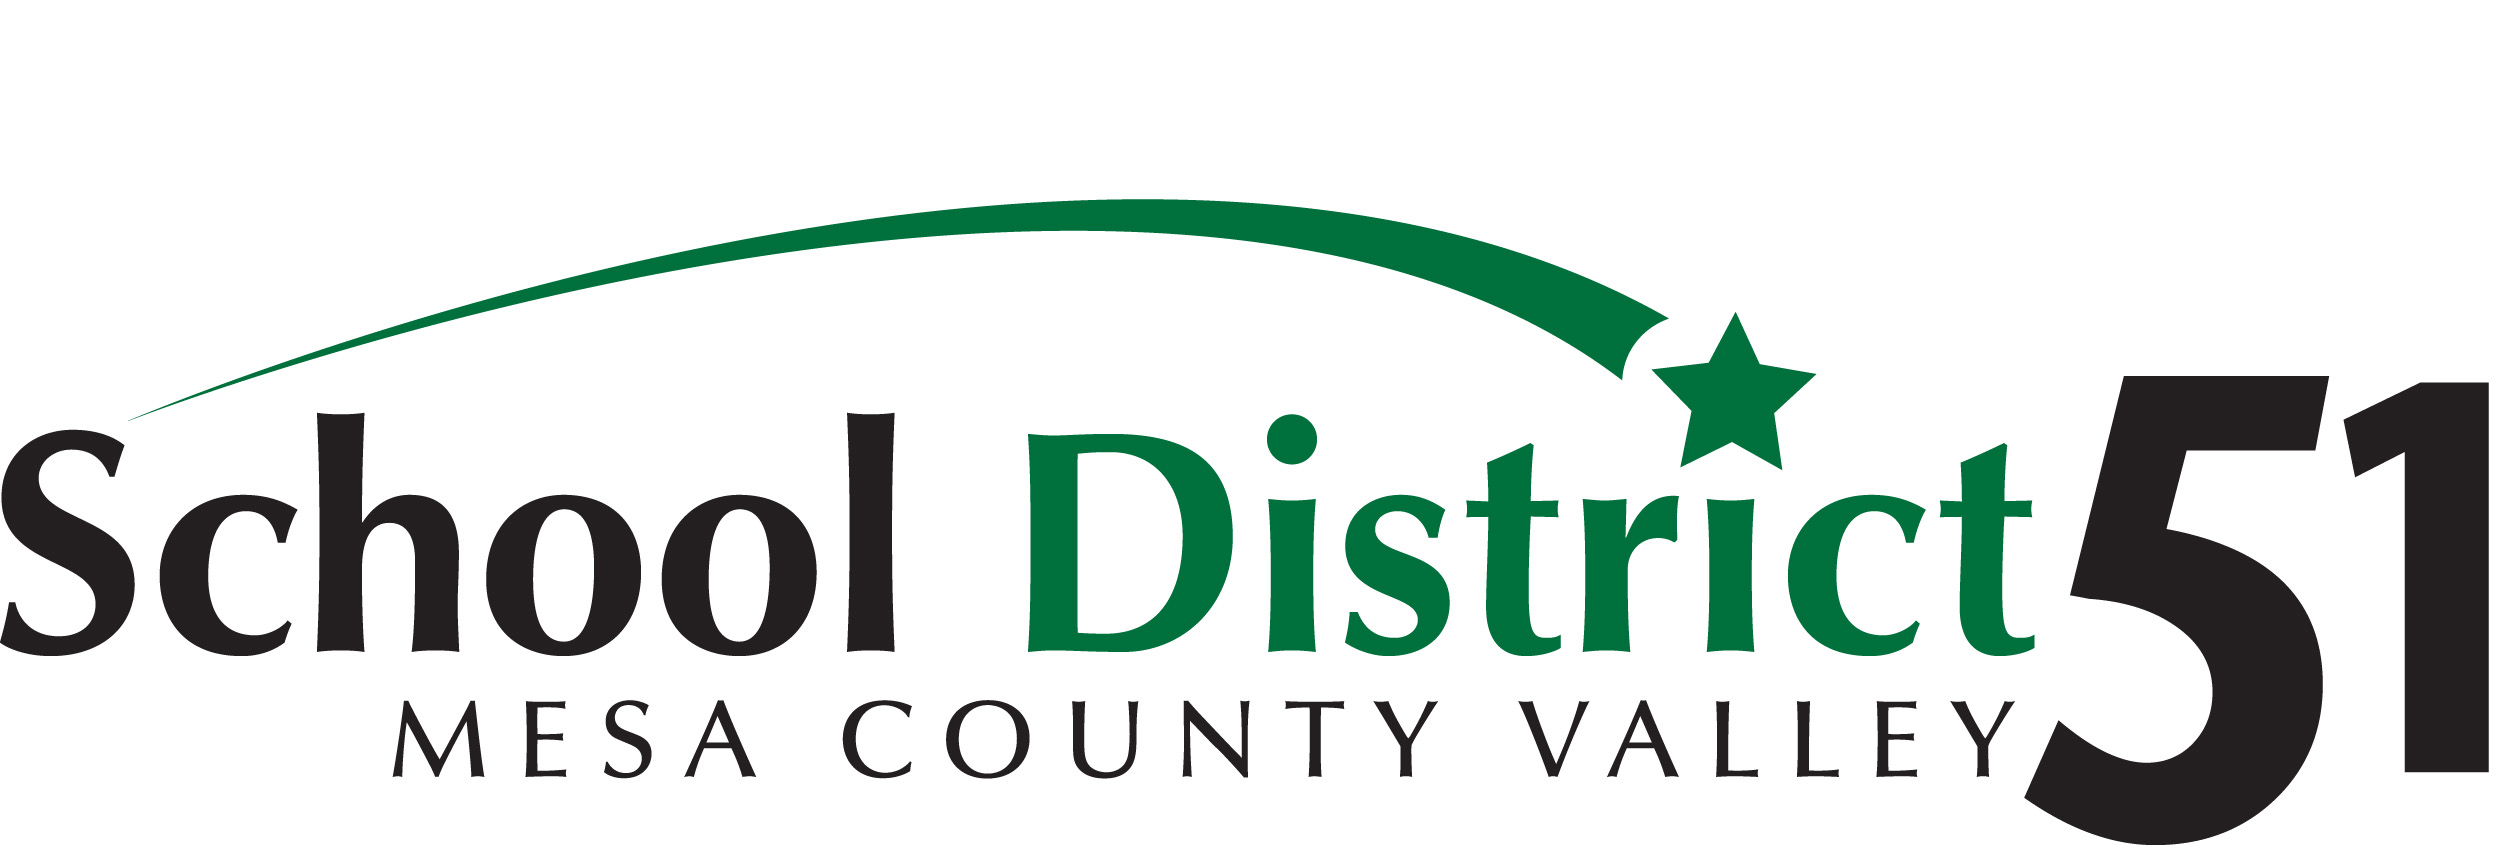 Organization logo of Mesa County Valley School District 51